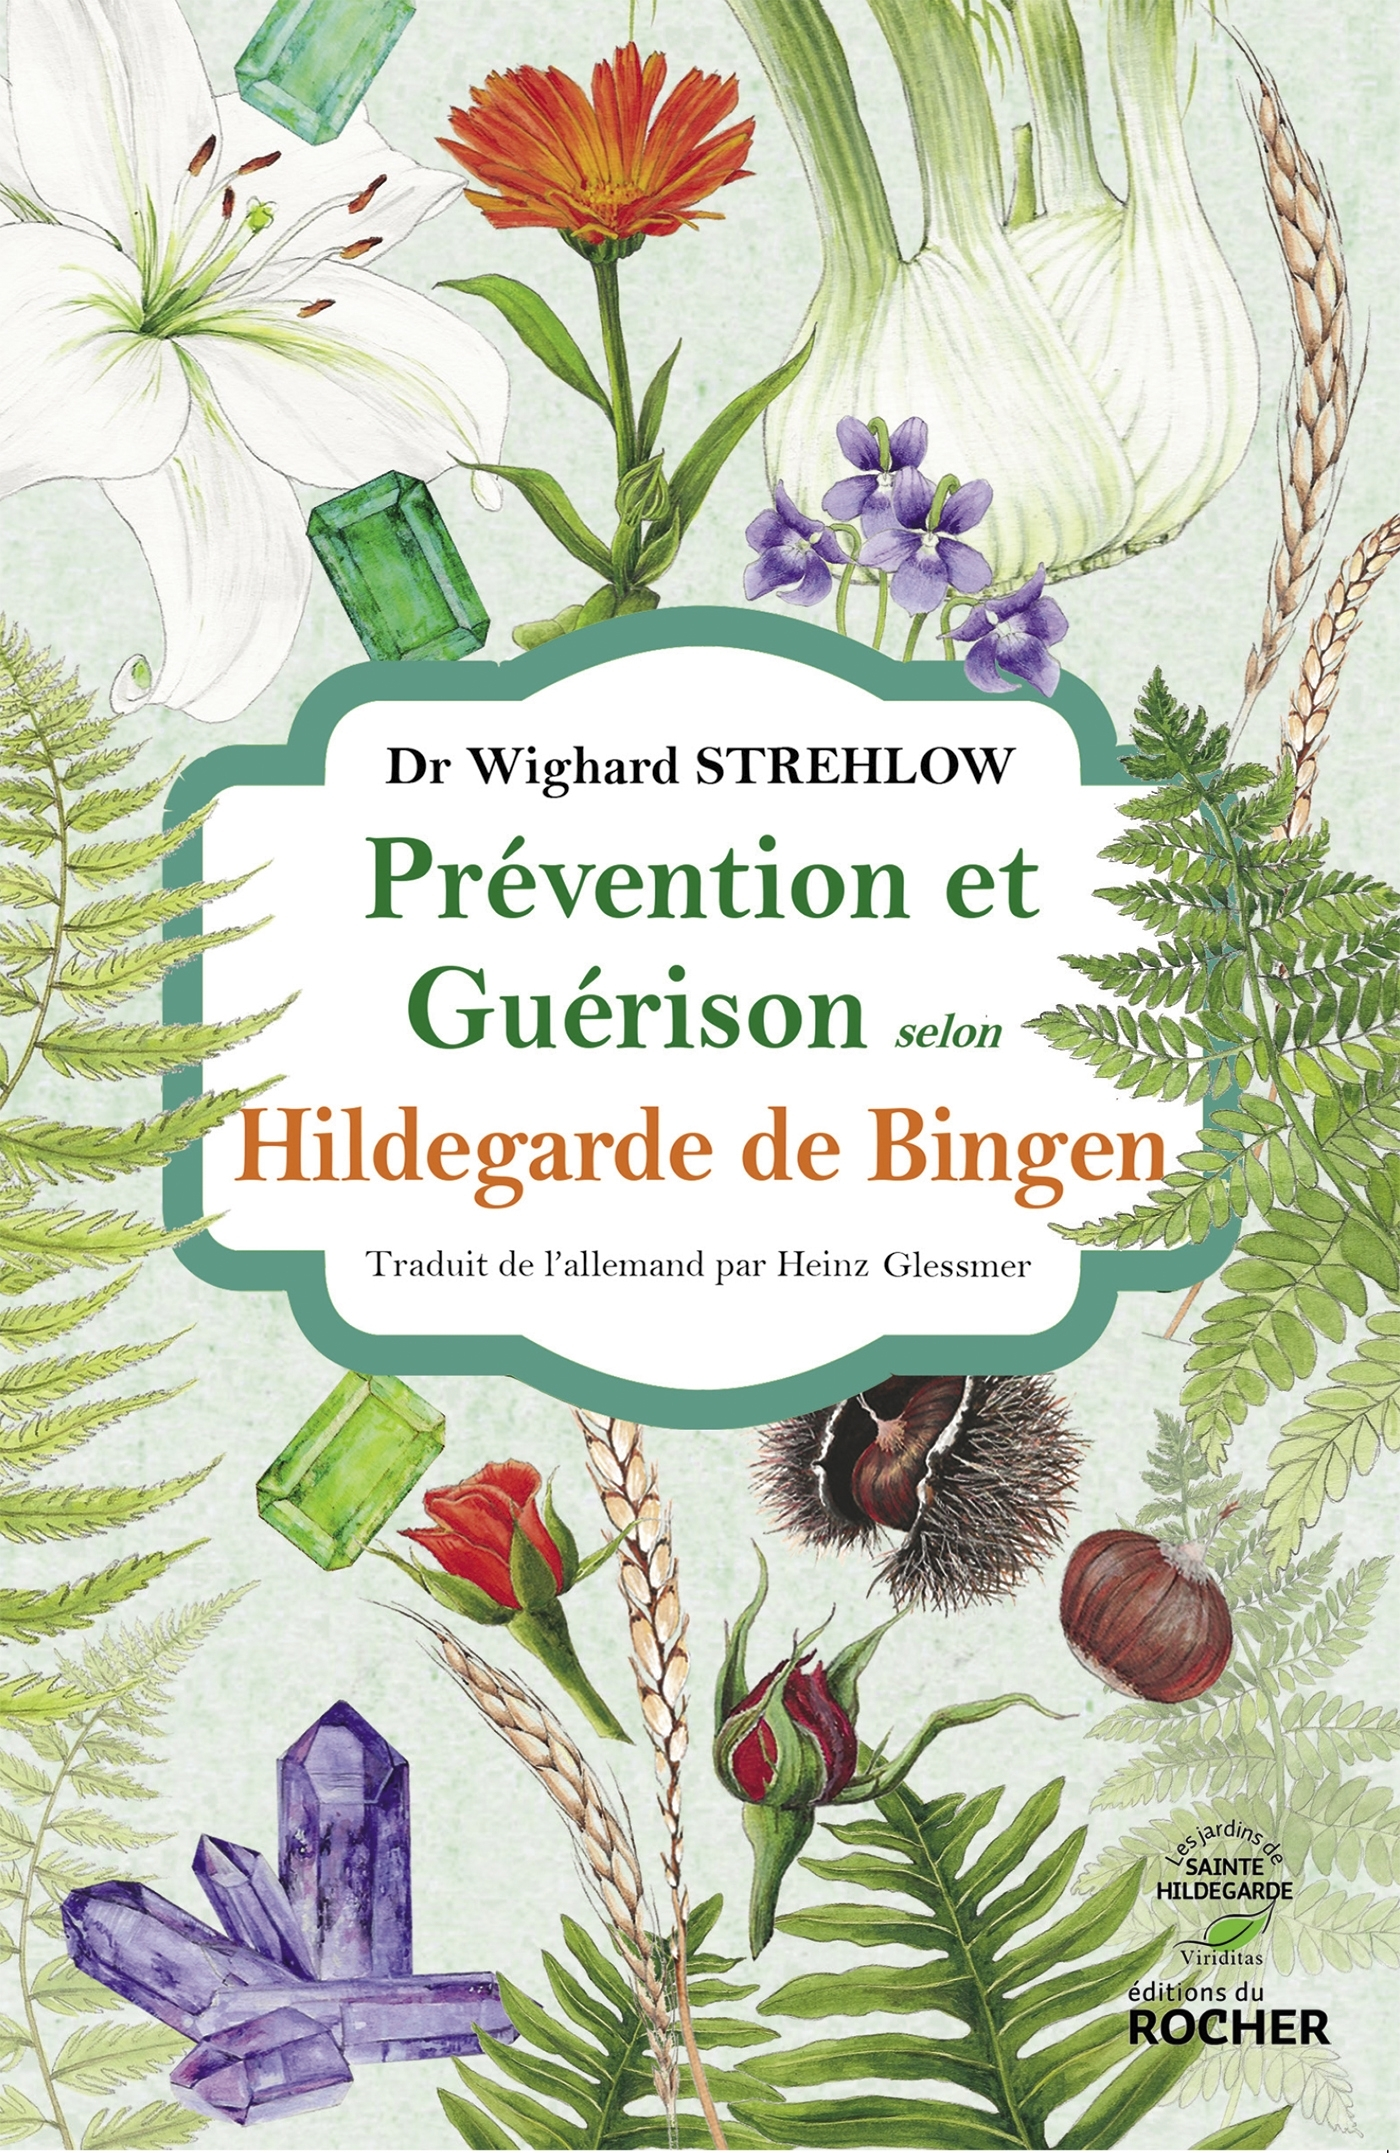 PREVENTION ET GUERISON SELON HILDEGARDE DE BINGEN